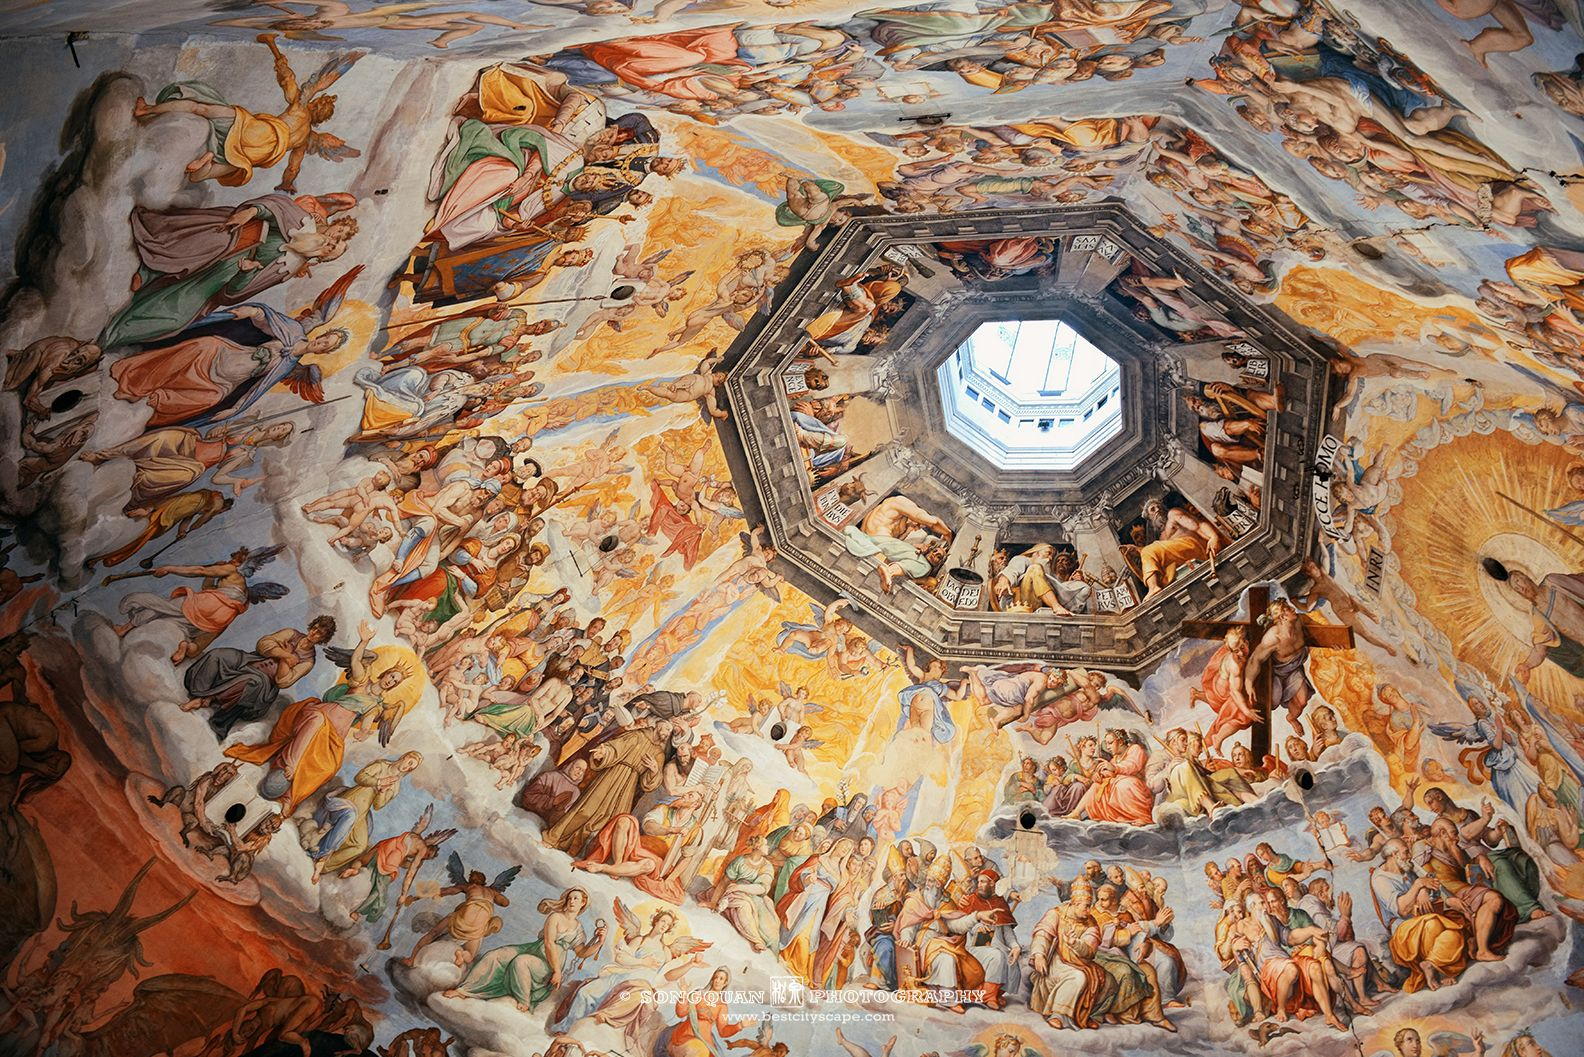 'The Last Judgement' fresco in Florence Cathedral in Italy.